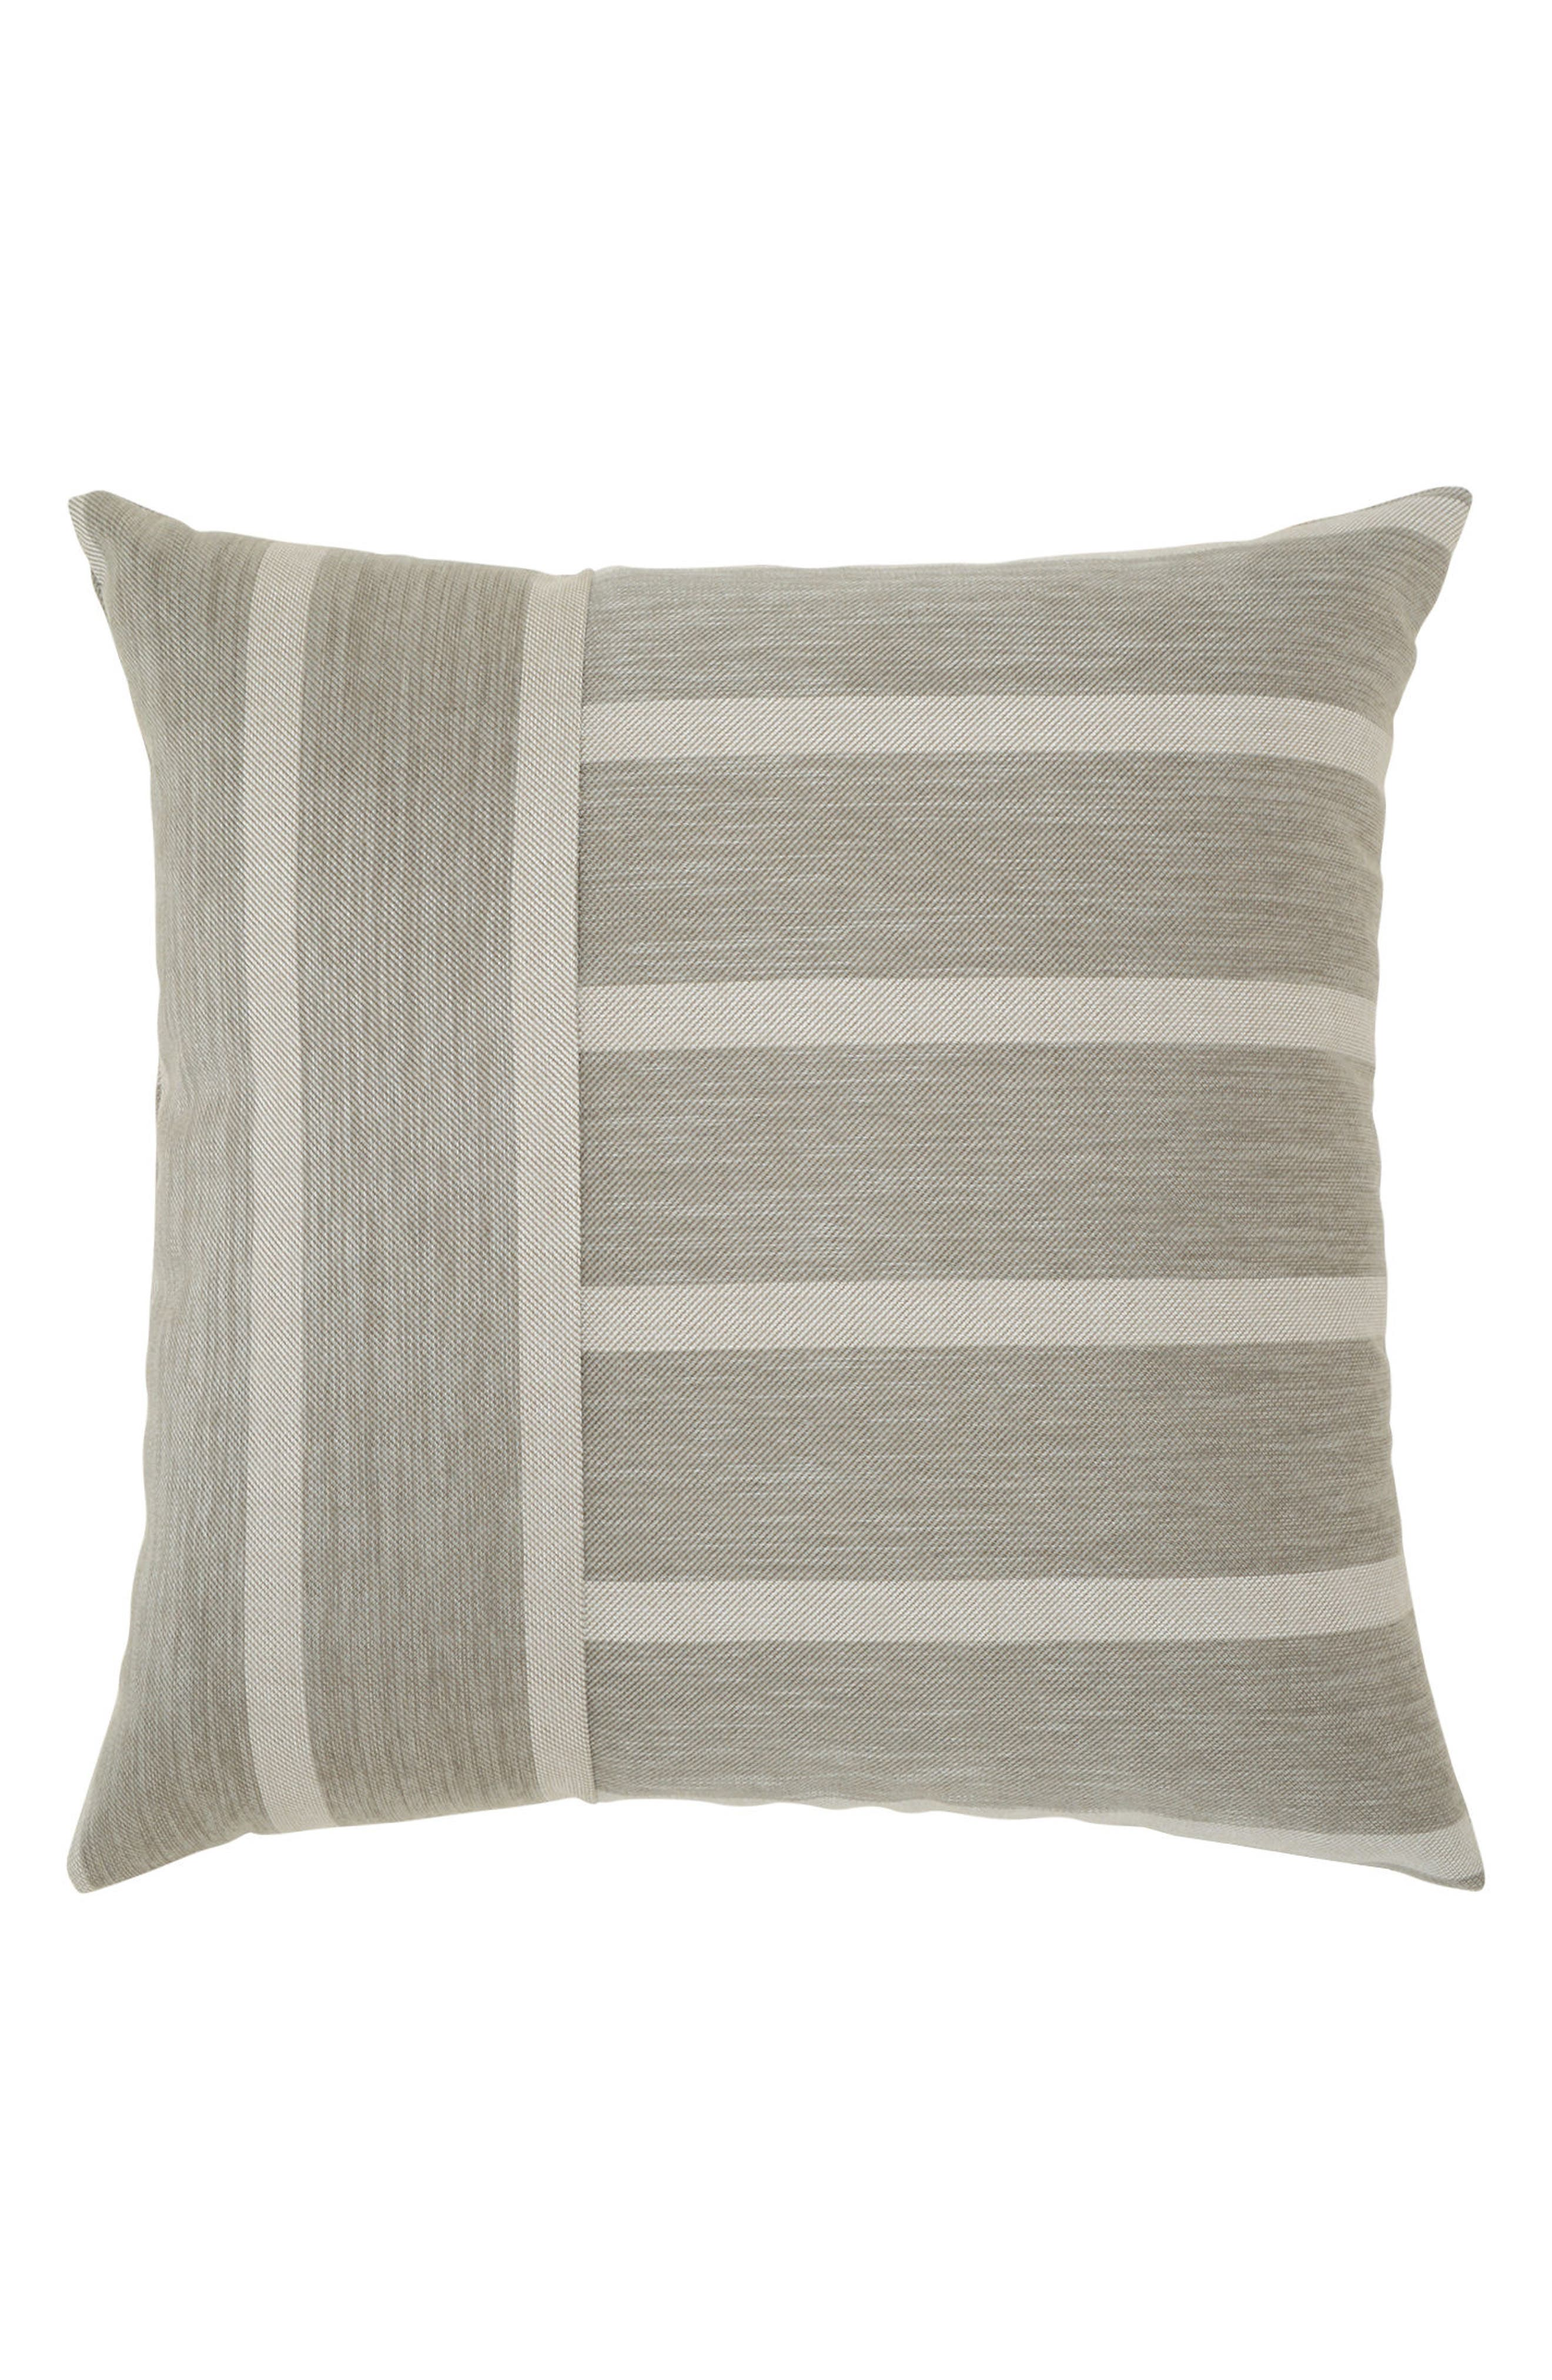 Elaine Smith Sparkle Stripe Indoor/Outdoor Accent Pillow